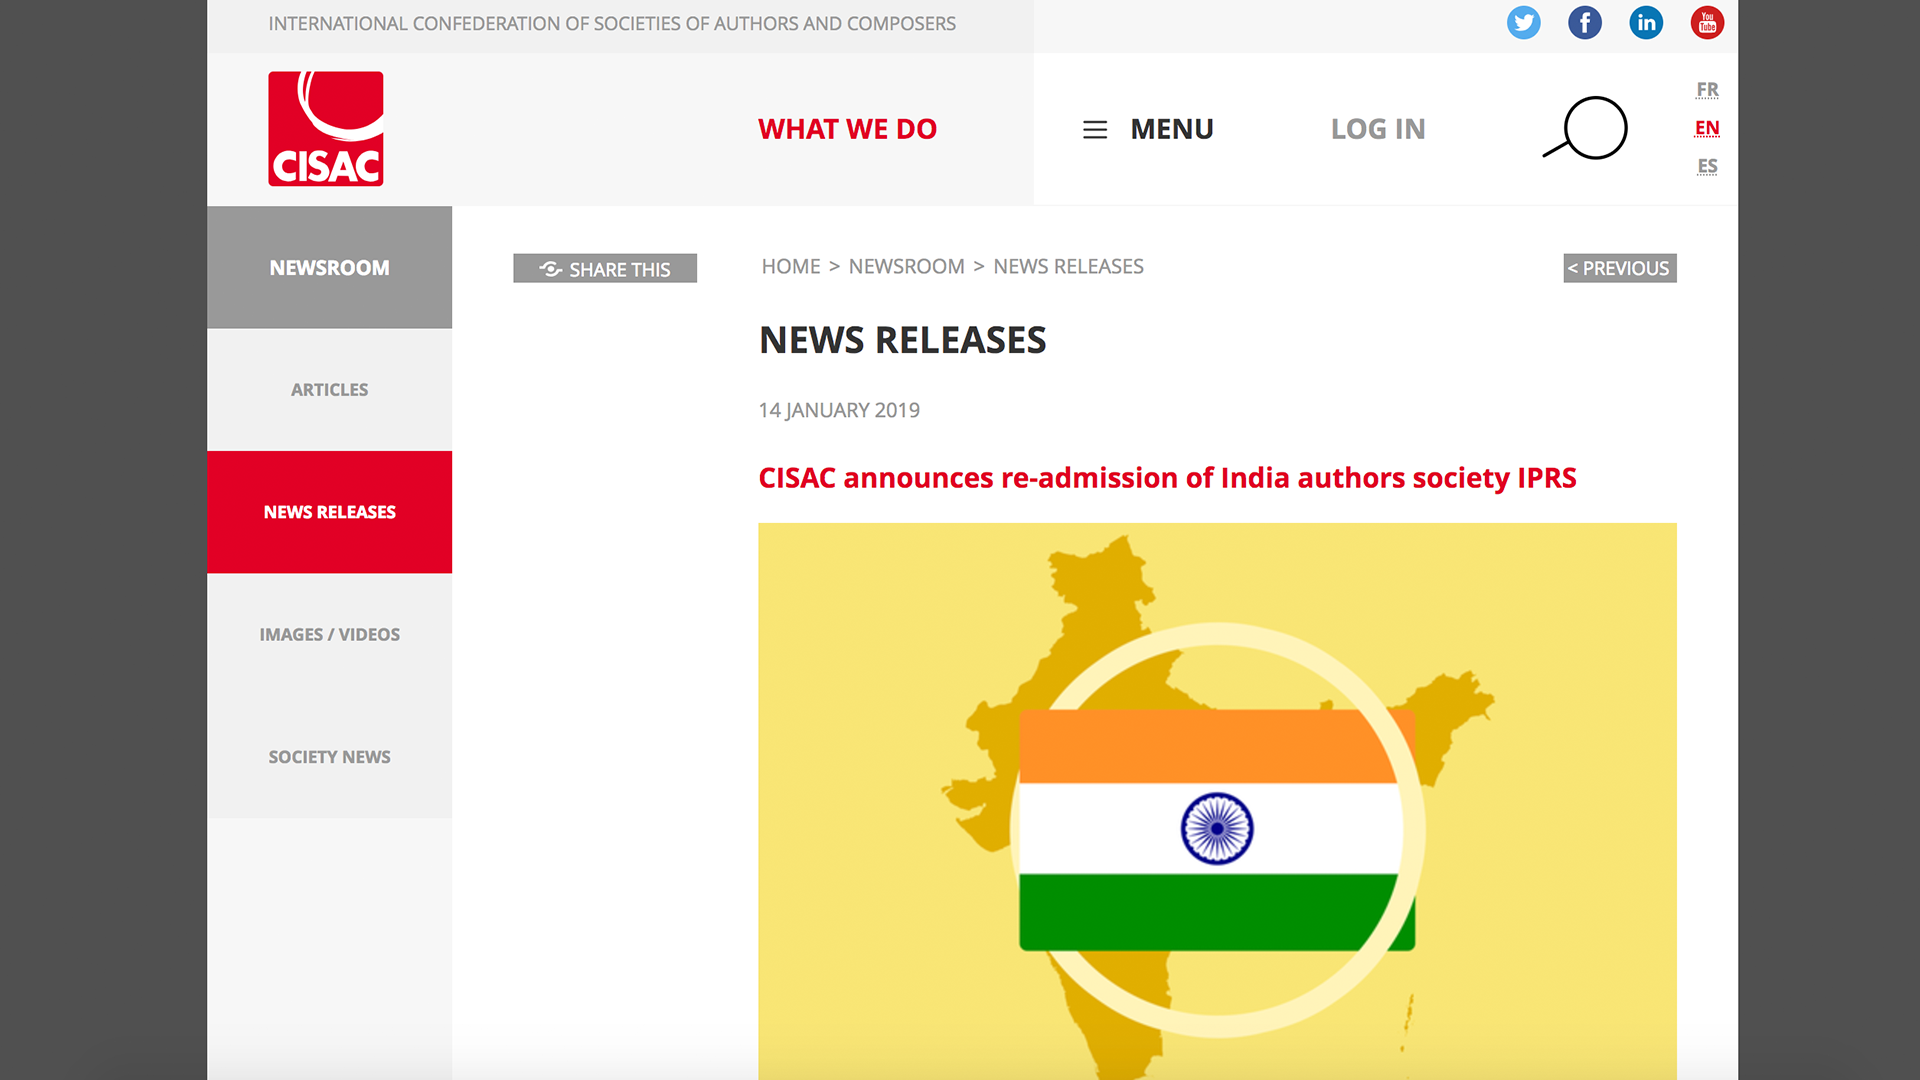 Fairness Rocks News CISAC announces re-admission of India authors society IPRS